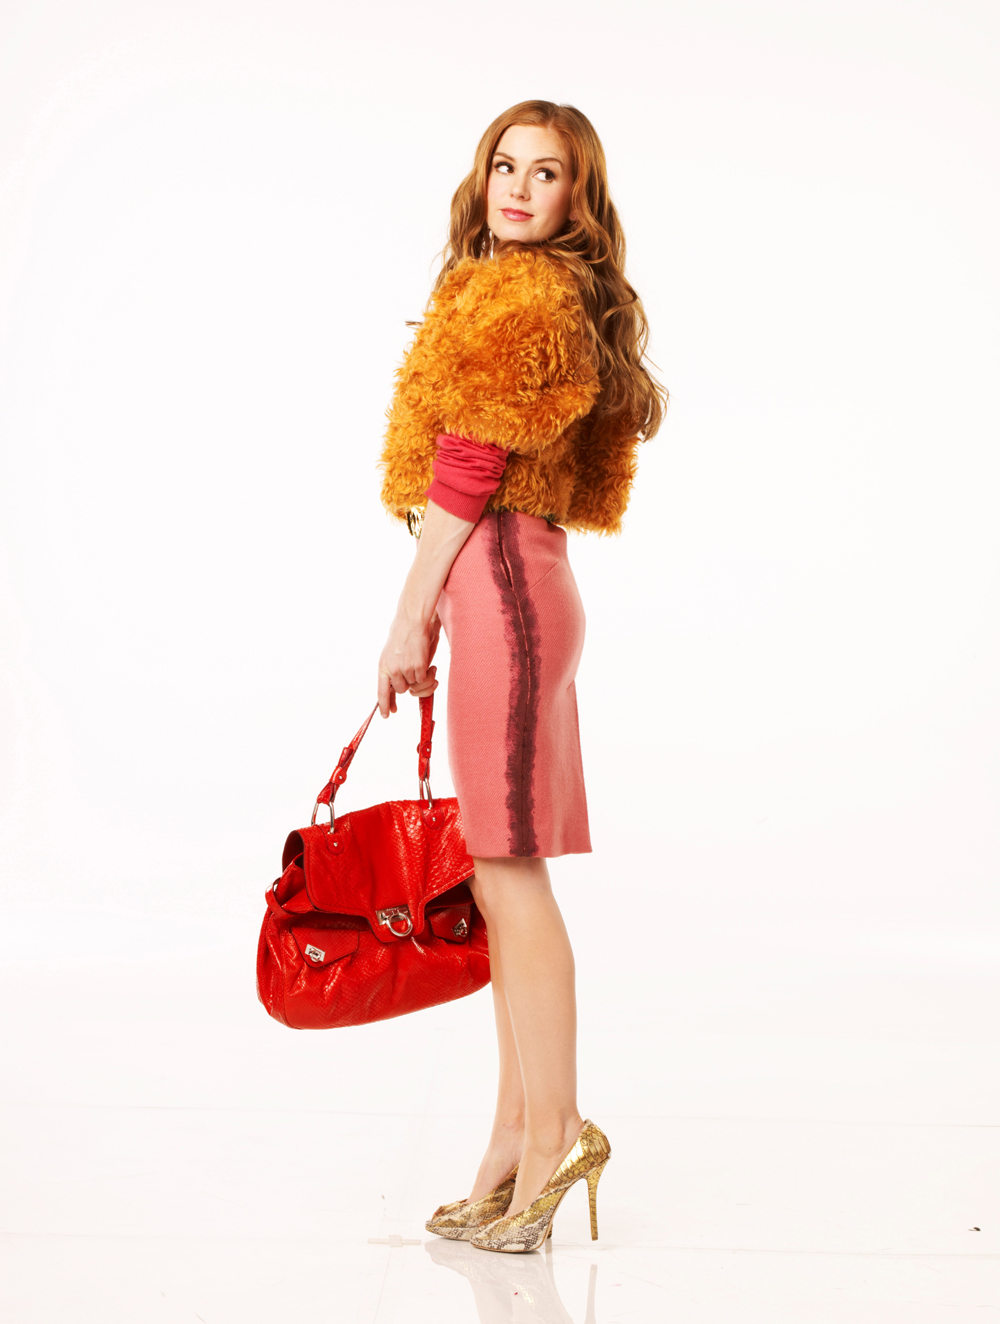 confessions of a shopaholic Like many new york city gals, rebecca bloomwood (isla fisher) loves to shop the trouble is, she shops so much that she is drowning in debt rebecca would love to work at the city's top fashion .